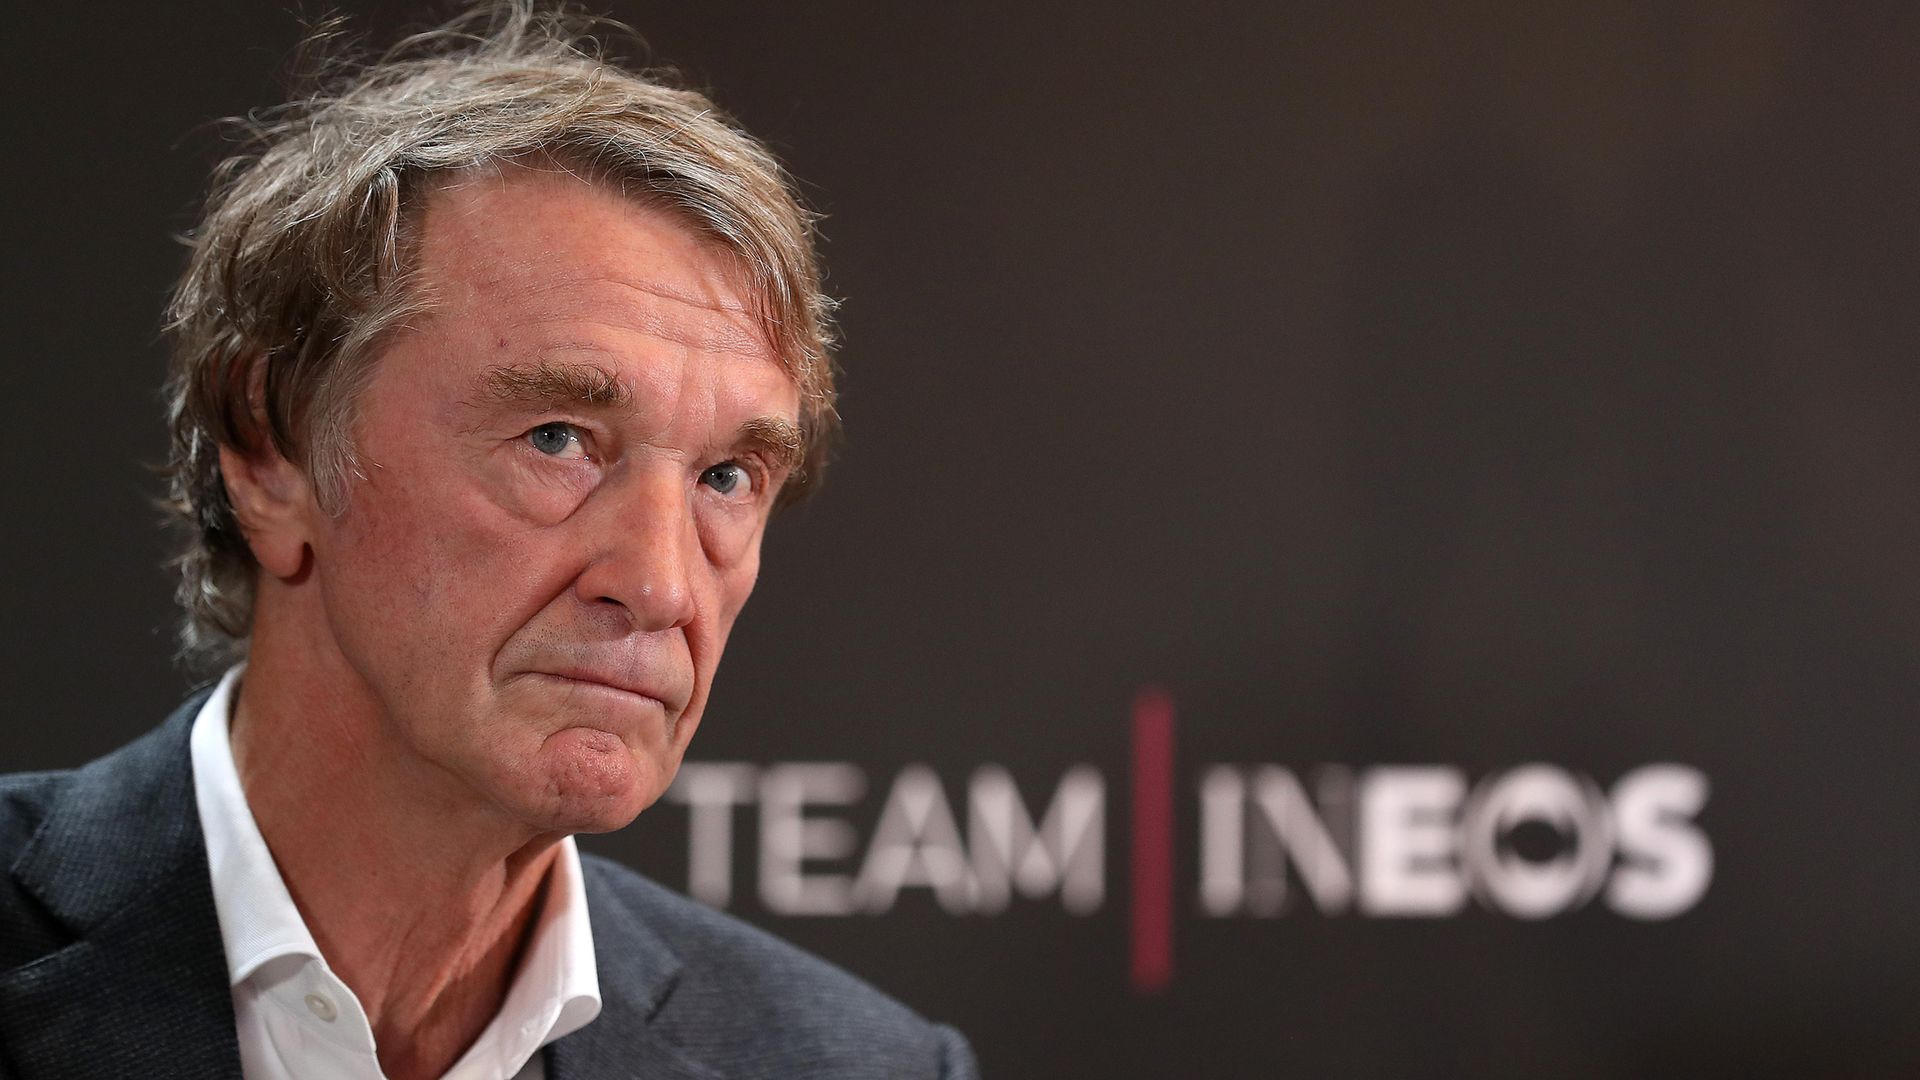 Team INEOS Owner Sir Jim Ratcliffe during a press conference to launch Team INEOS at The Fountaine Free in Linton, Yorkshire - Credit: PA